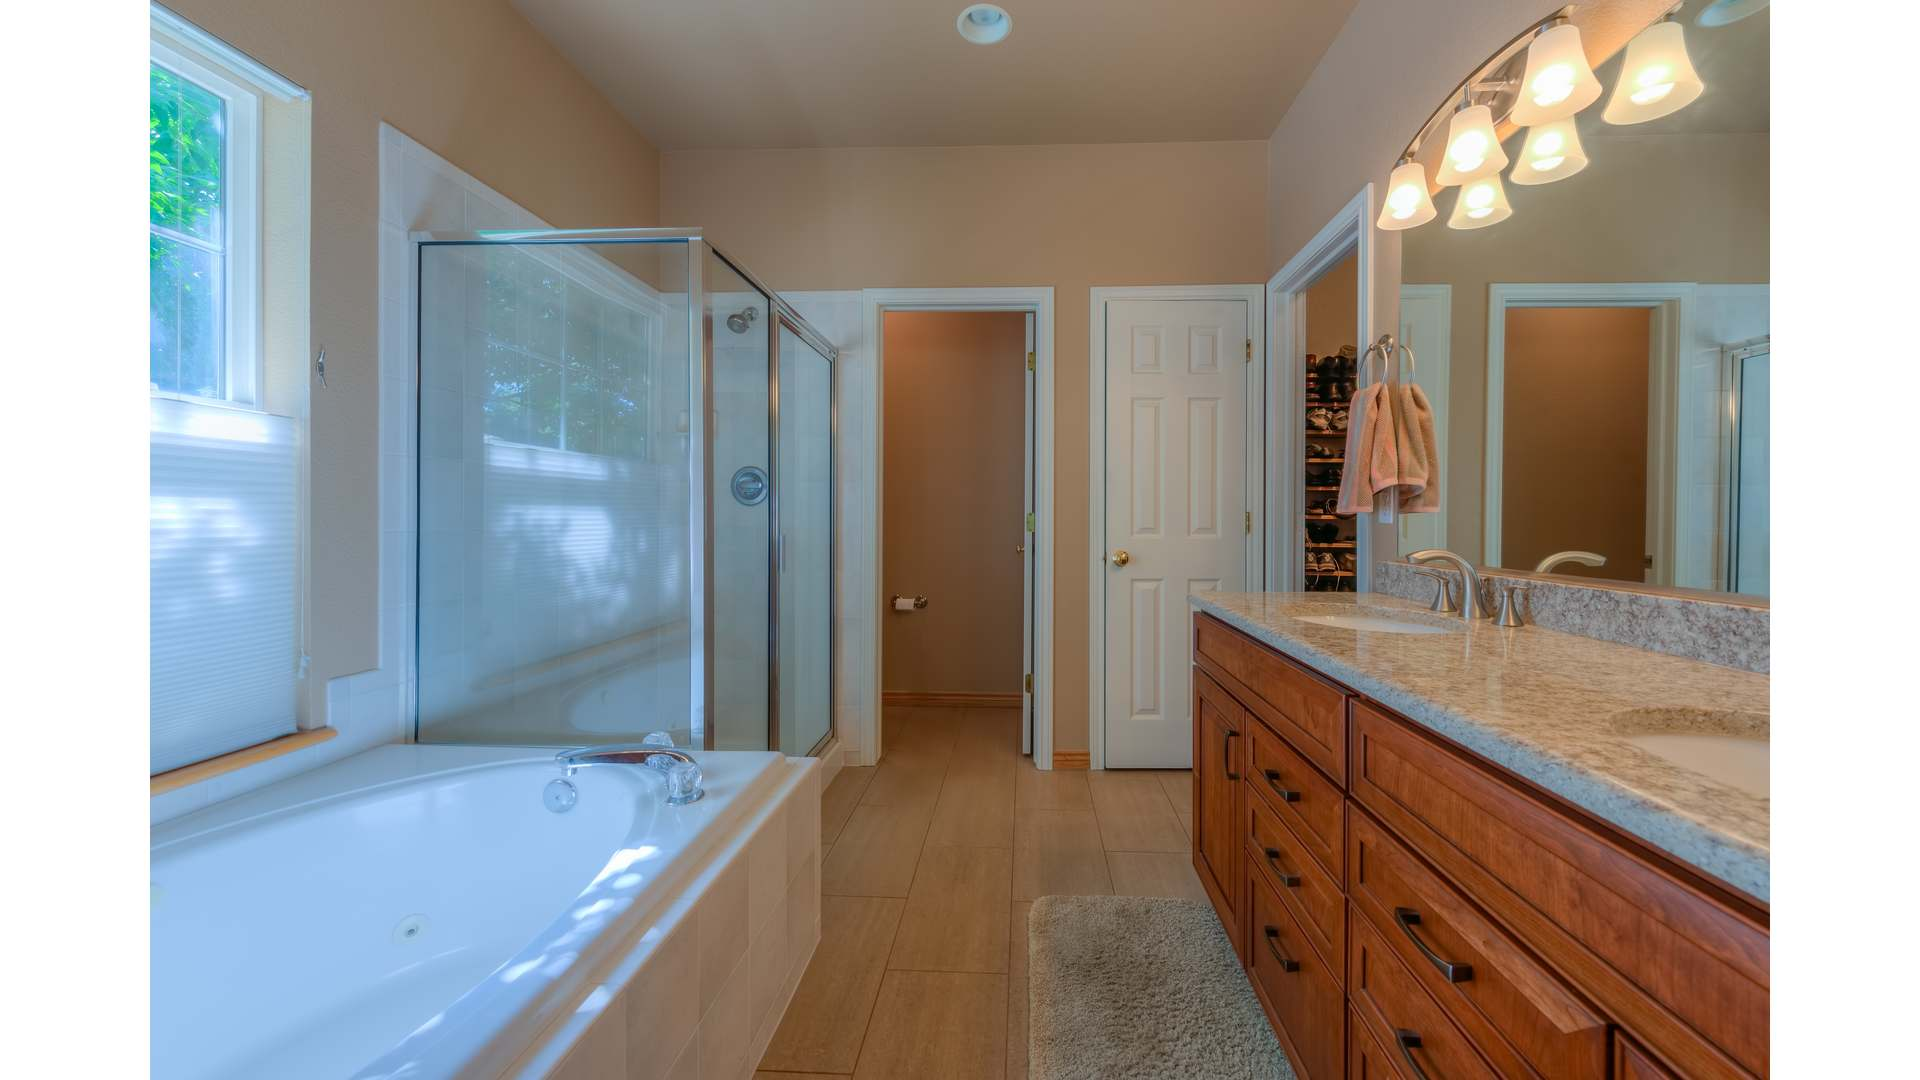 15 1995 Master Bath1 5TMDE Default RVT2 NR 1920 - Real Estate Photos